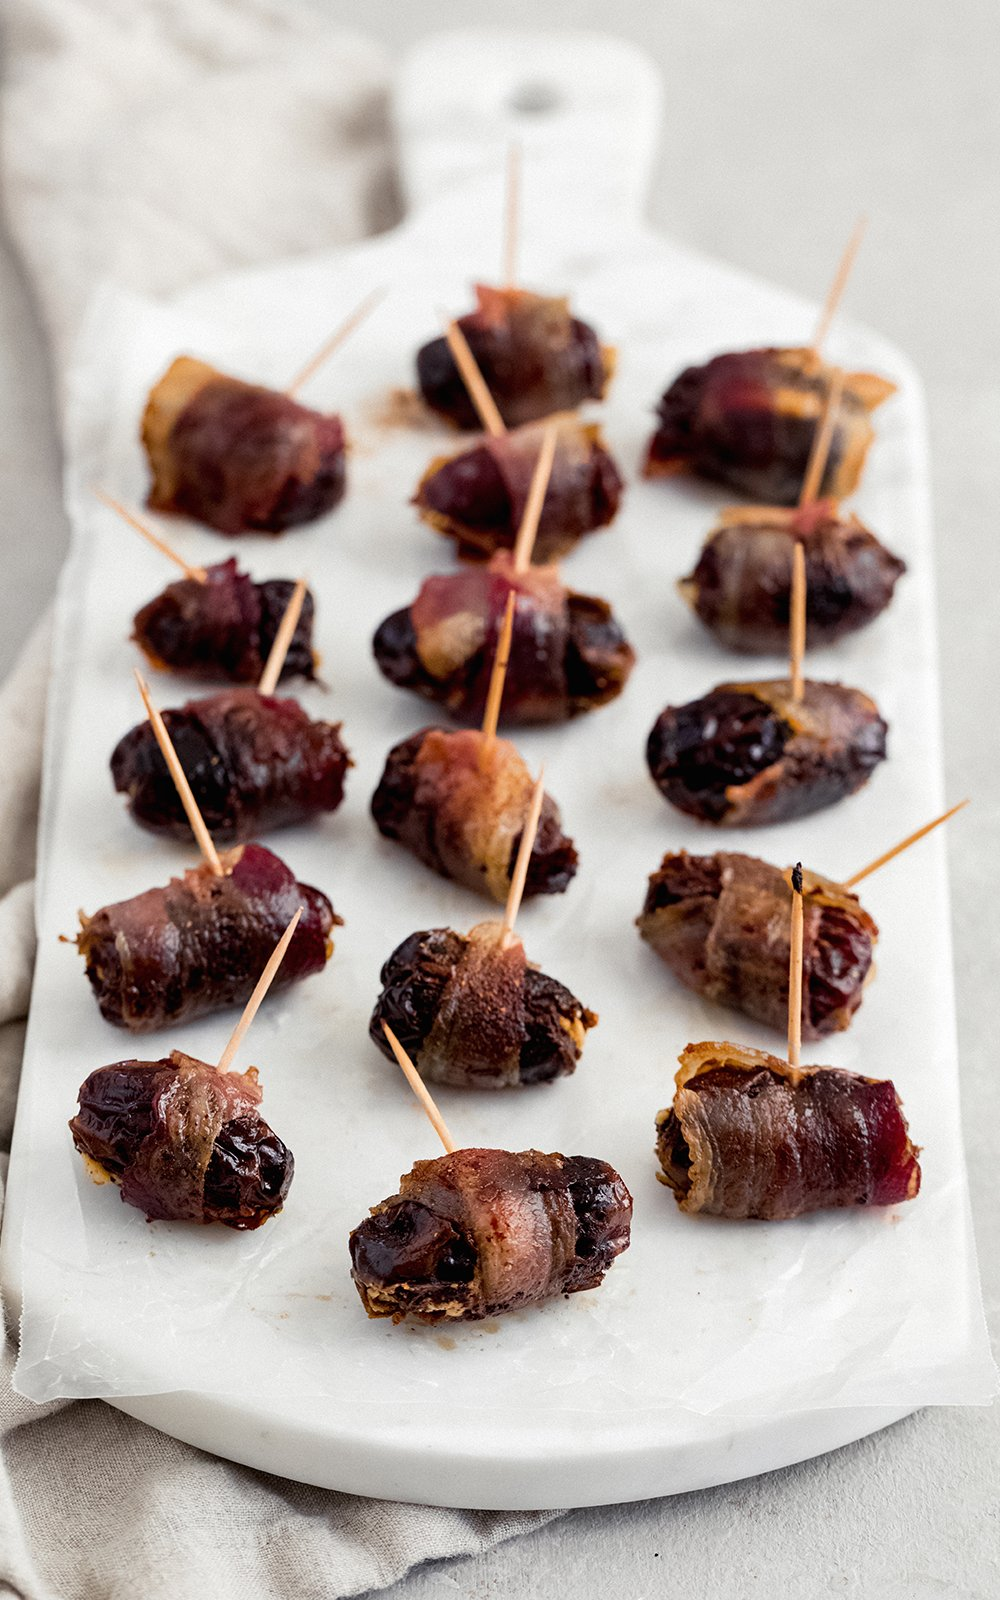 bacon wrapped goat cheese stuffed dates with toothpicks on a marble serving tray